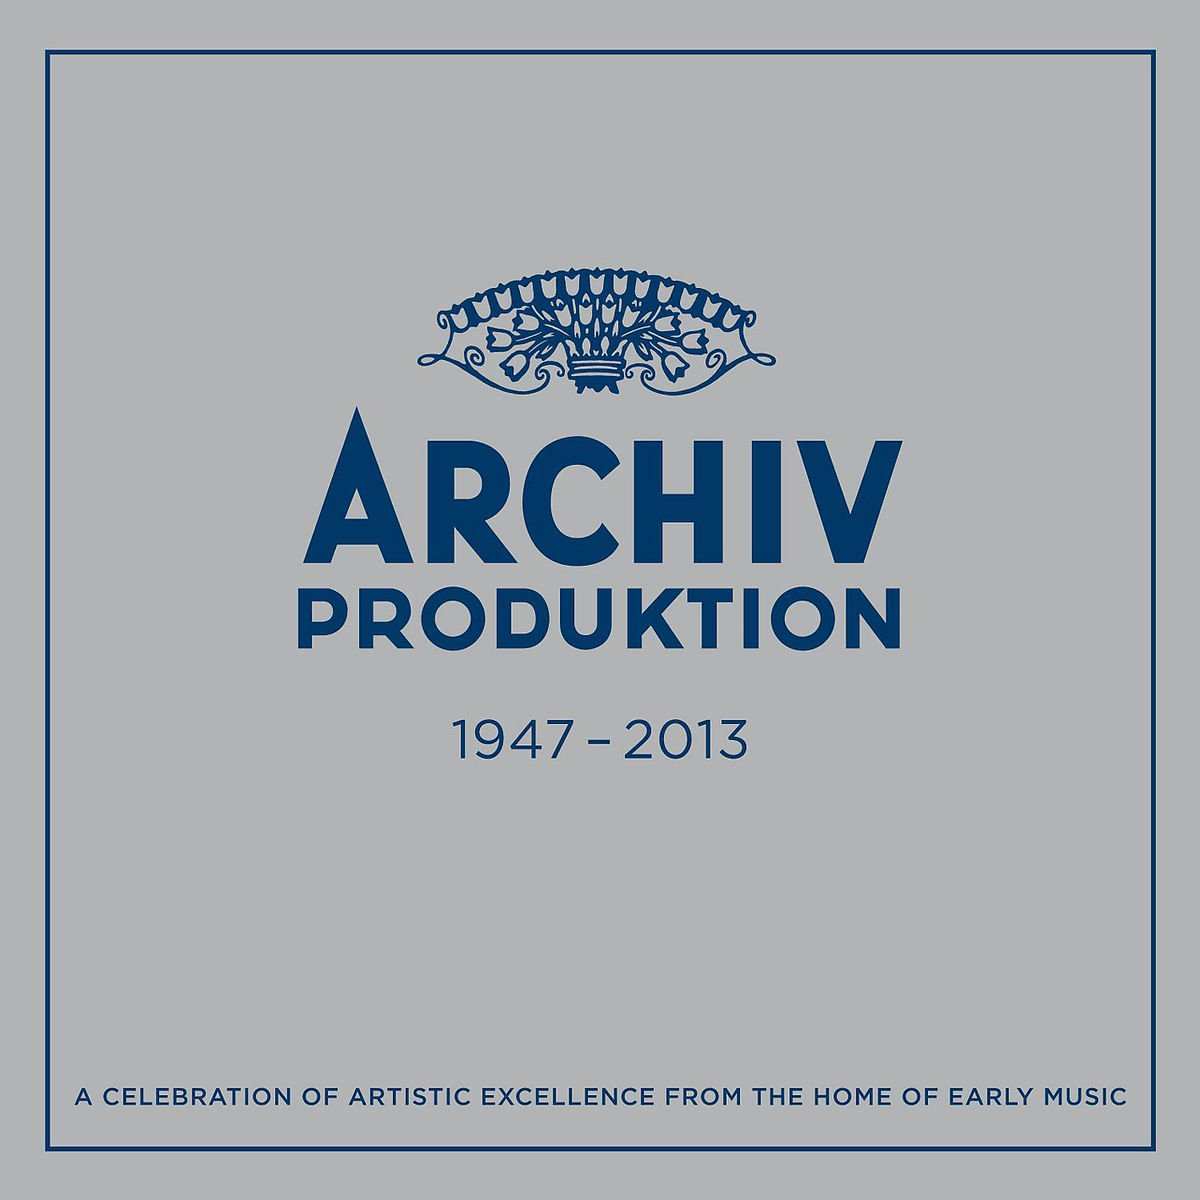 Archiv Produktion 1947-2013                                                                                                                                                                                                                                                                                                                                                                                                <span class=